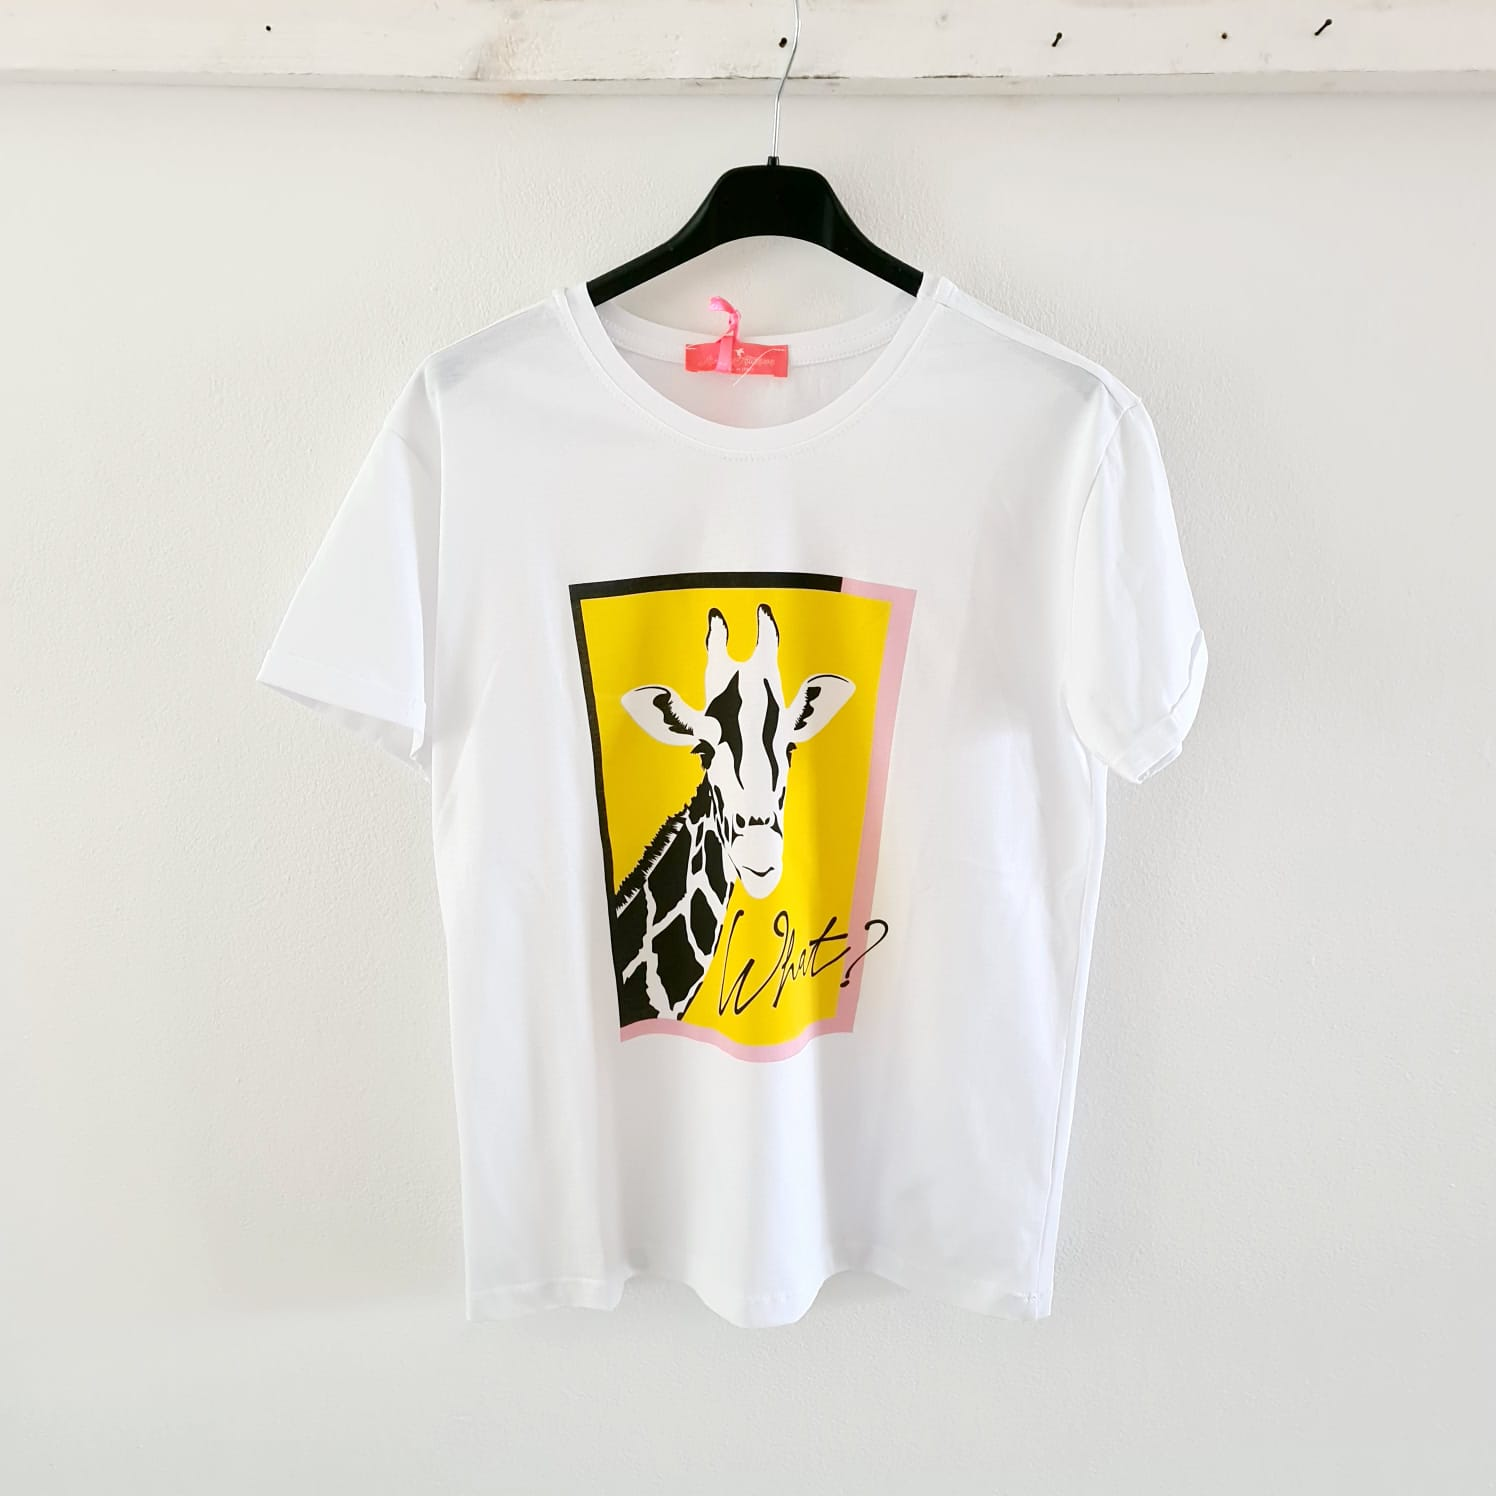 T-Shirt What ?